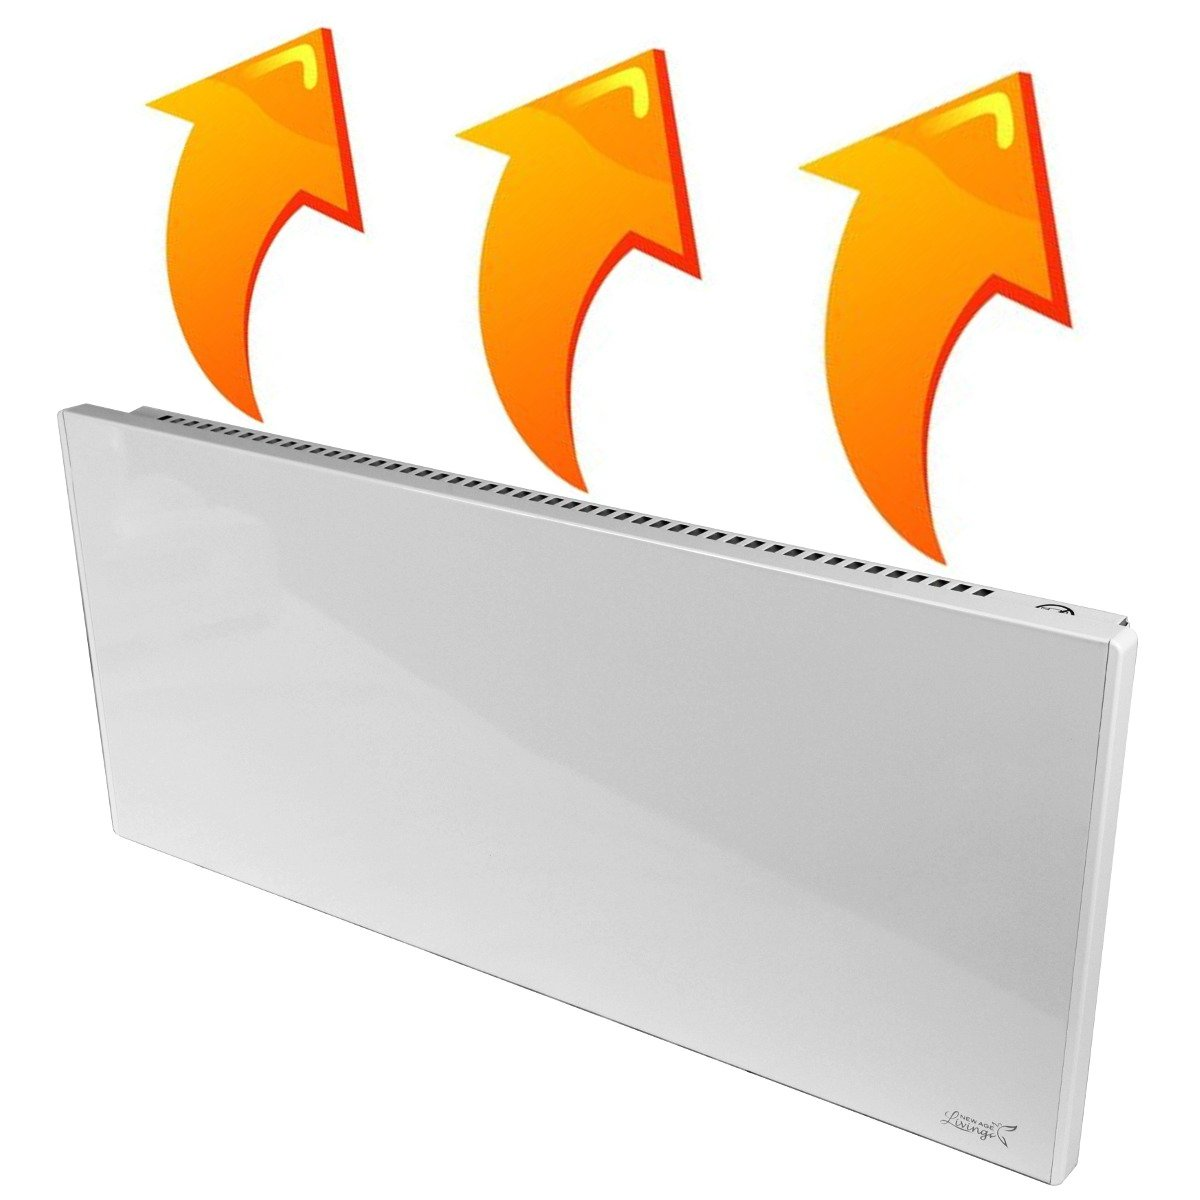 New Age Living Phantom 10 Wall Panel Heater - 750W - Radiant & Convection Heating - Silent With No Moving Parts - TUV Rated For Safe Home Use